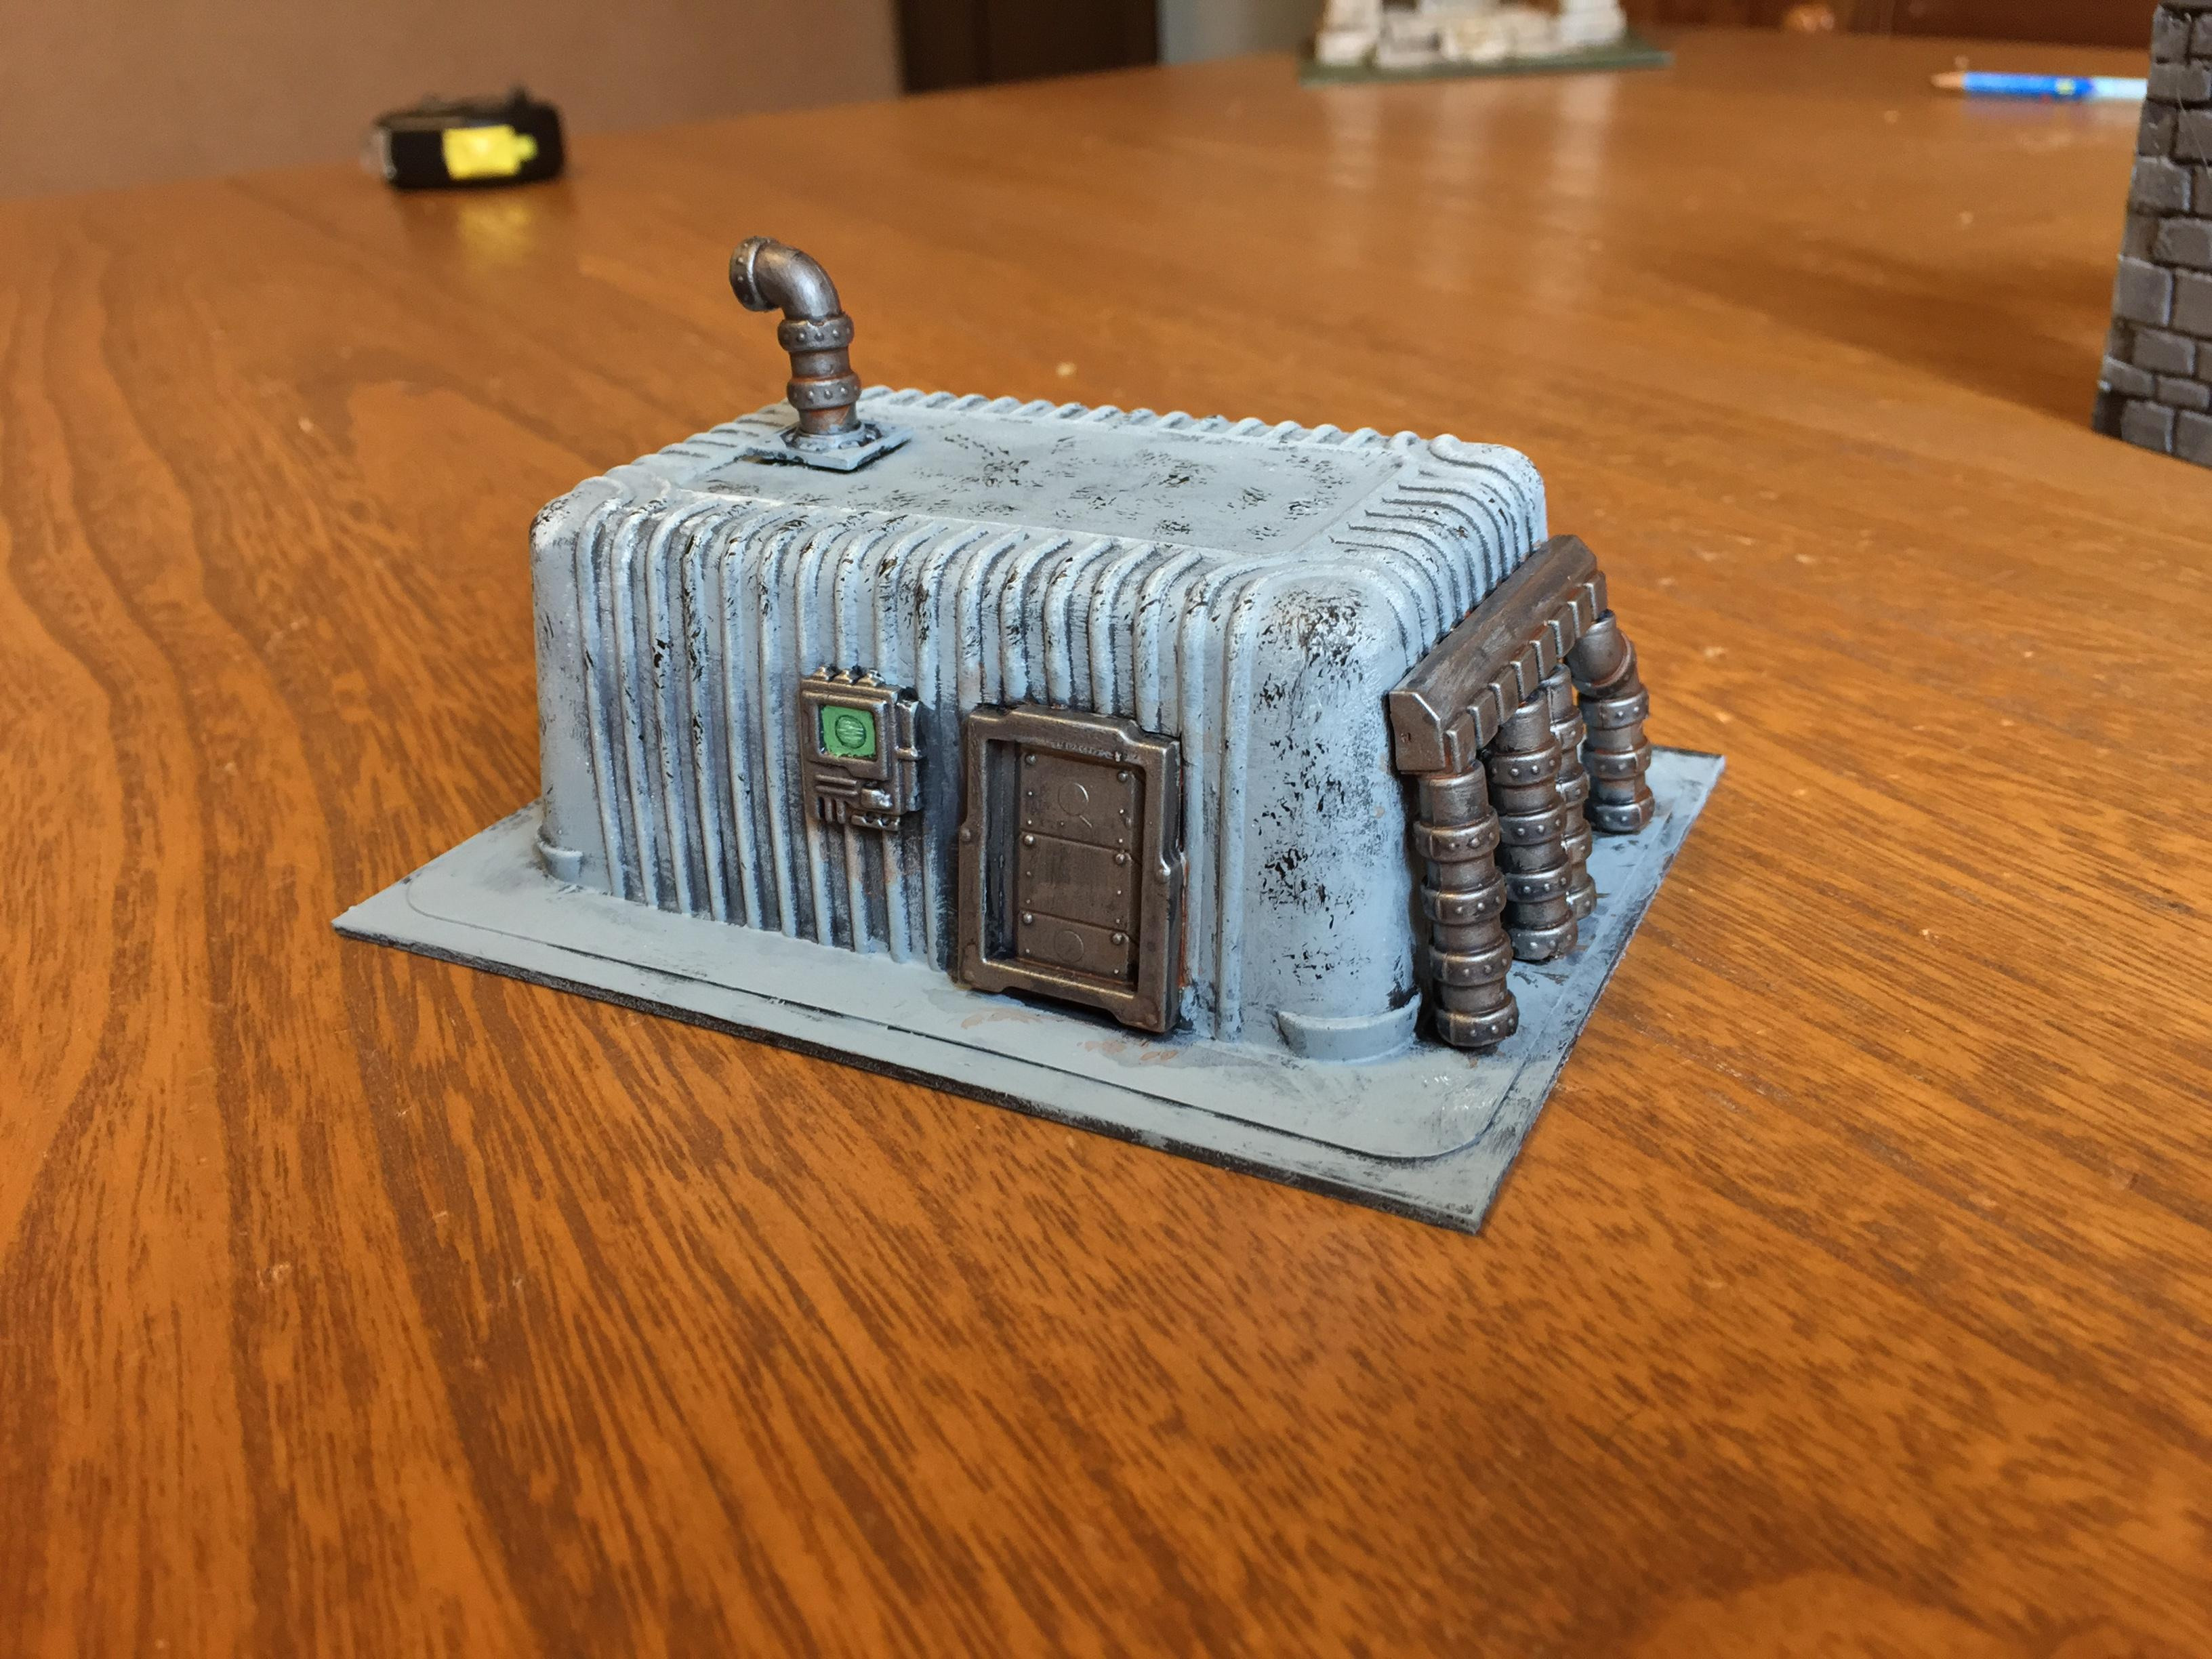 August 2017, Bunker, Maelstrom's Edge, Medge, Recycling, Science-fiction, Terrain, Tofu